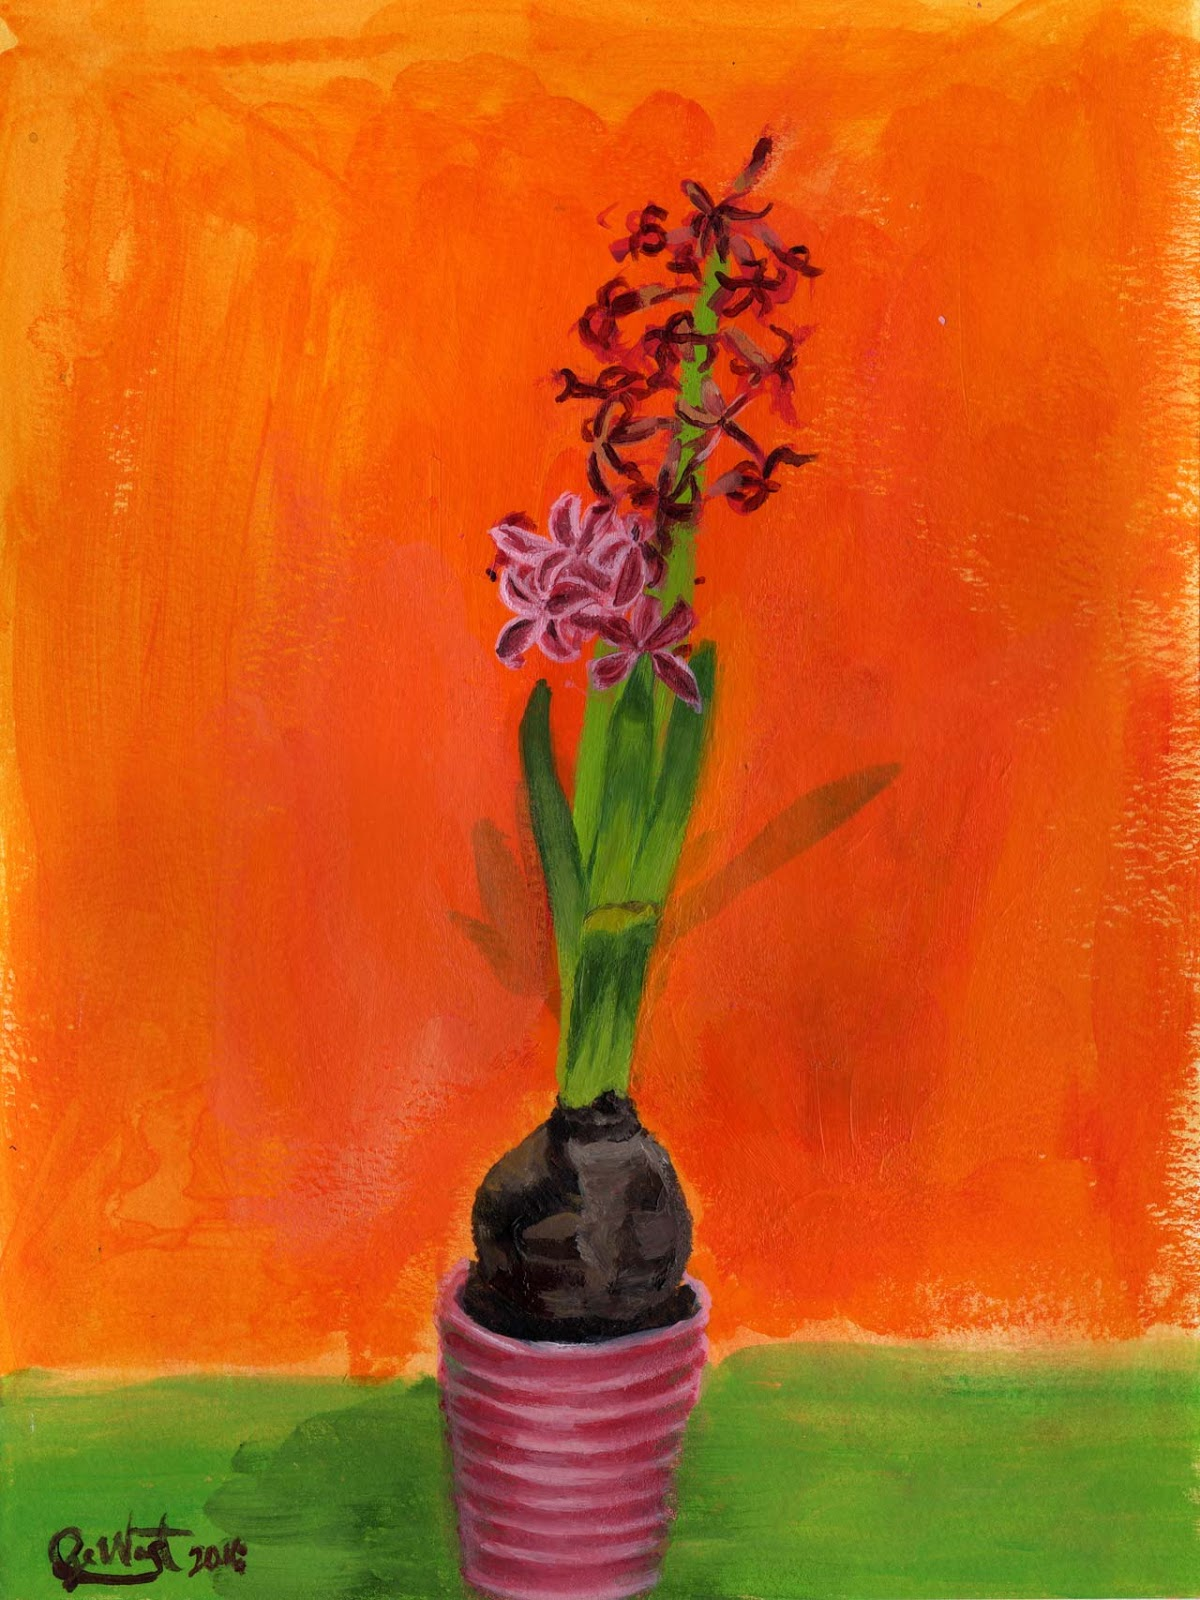 Sze Wat - Painting Study #2 of Hyacinth